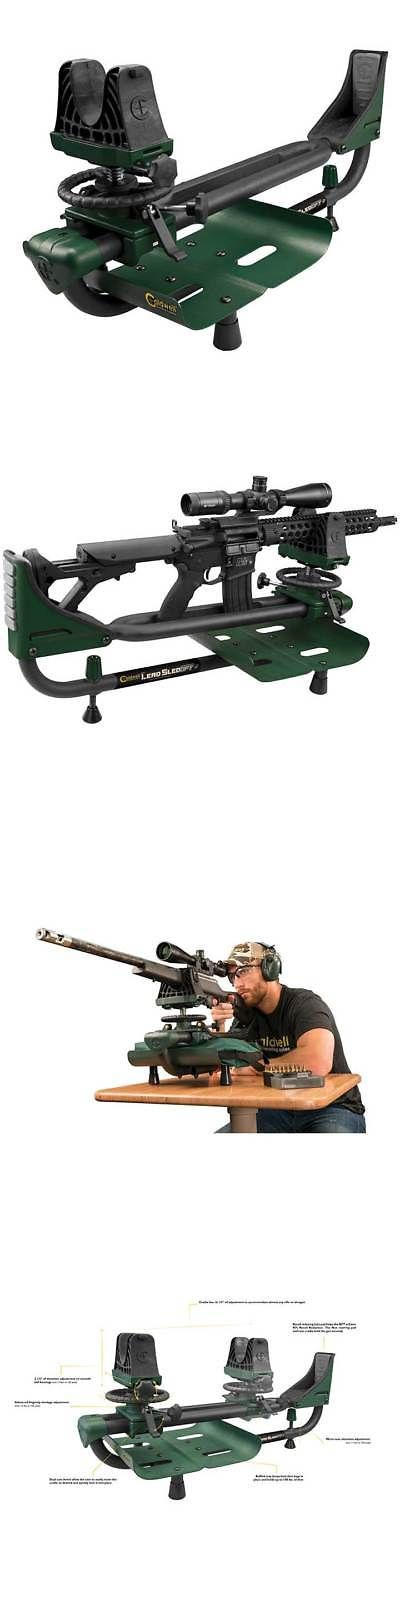 Benches and Rests 177887: New Caldwell Lead Sled Dft 2 336677 -> BUY IT NOW ONLY: $193.78 on eBay!